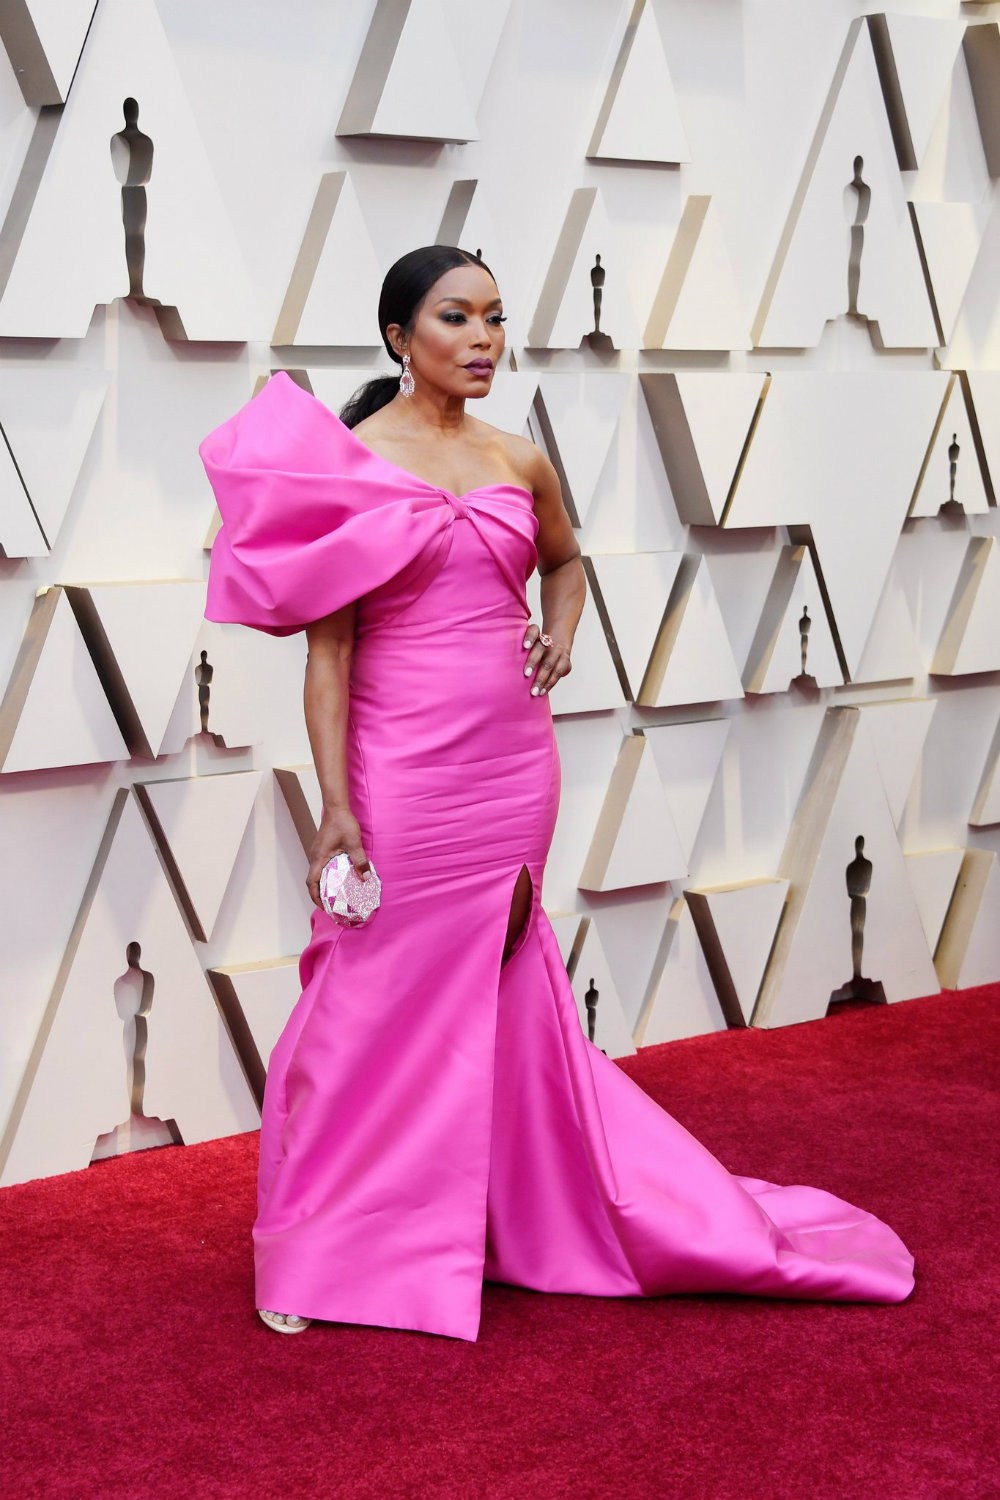 Oscars 2019 Red Carpet The Best Fashion 02 oscars 2019 red carpet Oscars 2019 Red Carpet : The Best Fashion Oscars 2019 Red Carpet The Best Fashion 02